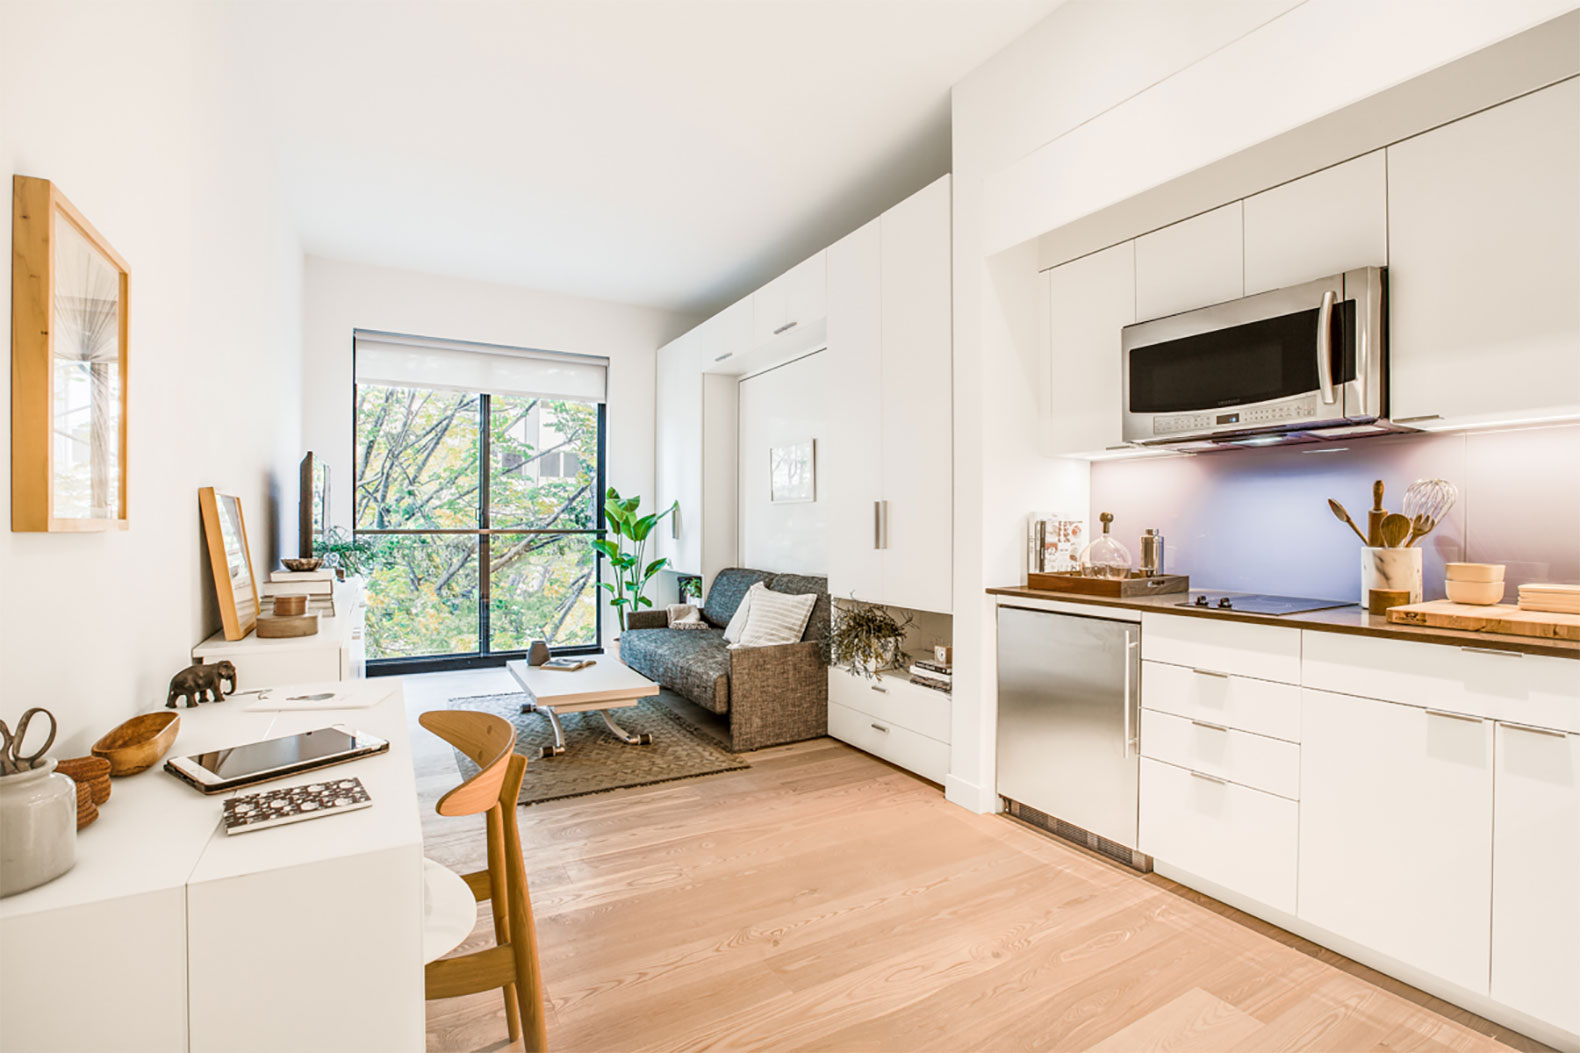 Heres what NYCs first micro apartments will look like on the inside  Inhabitat  Green Design